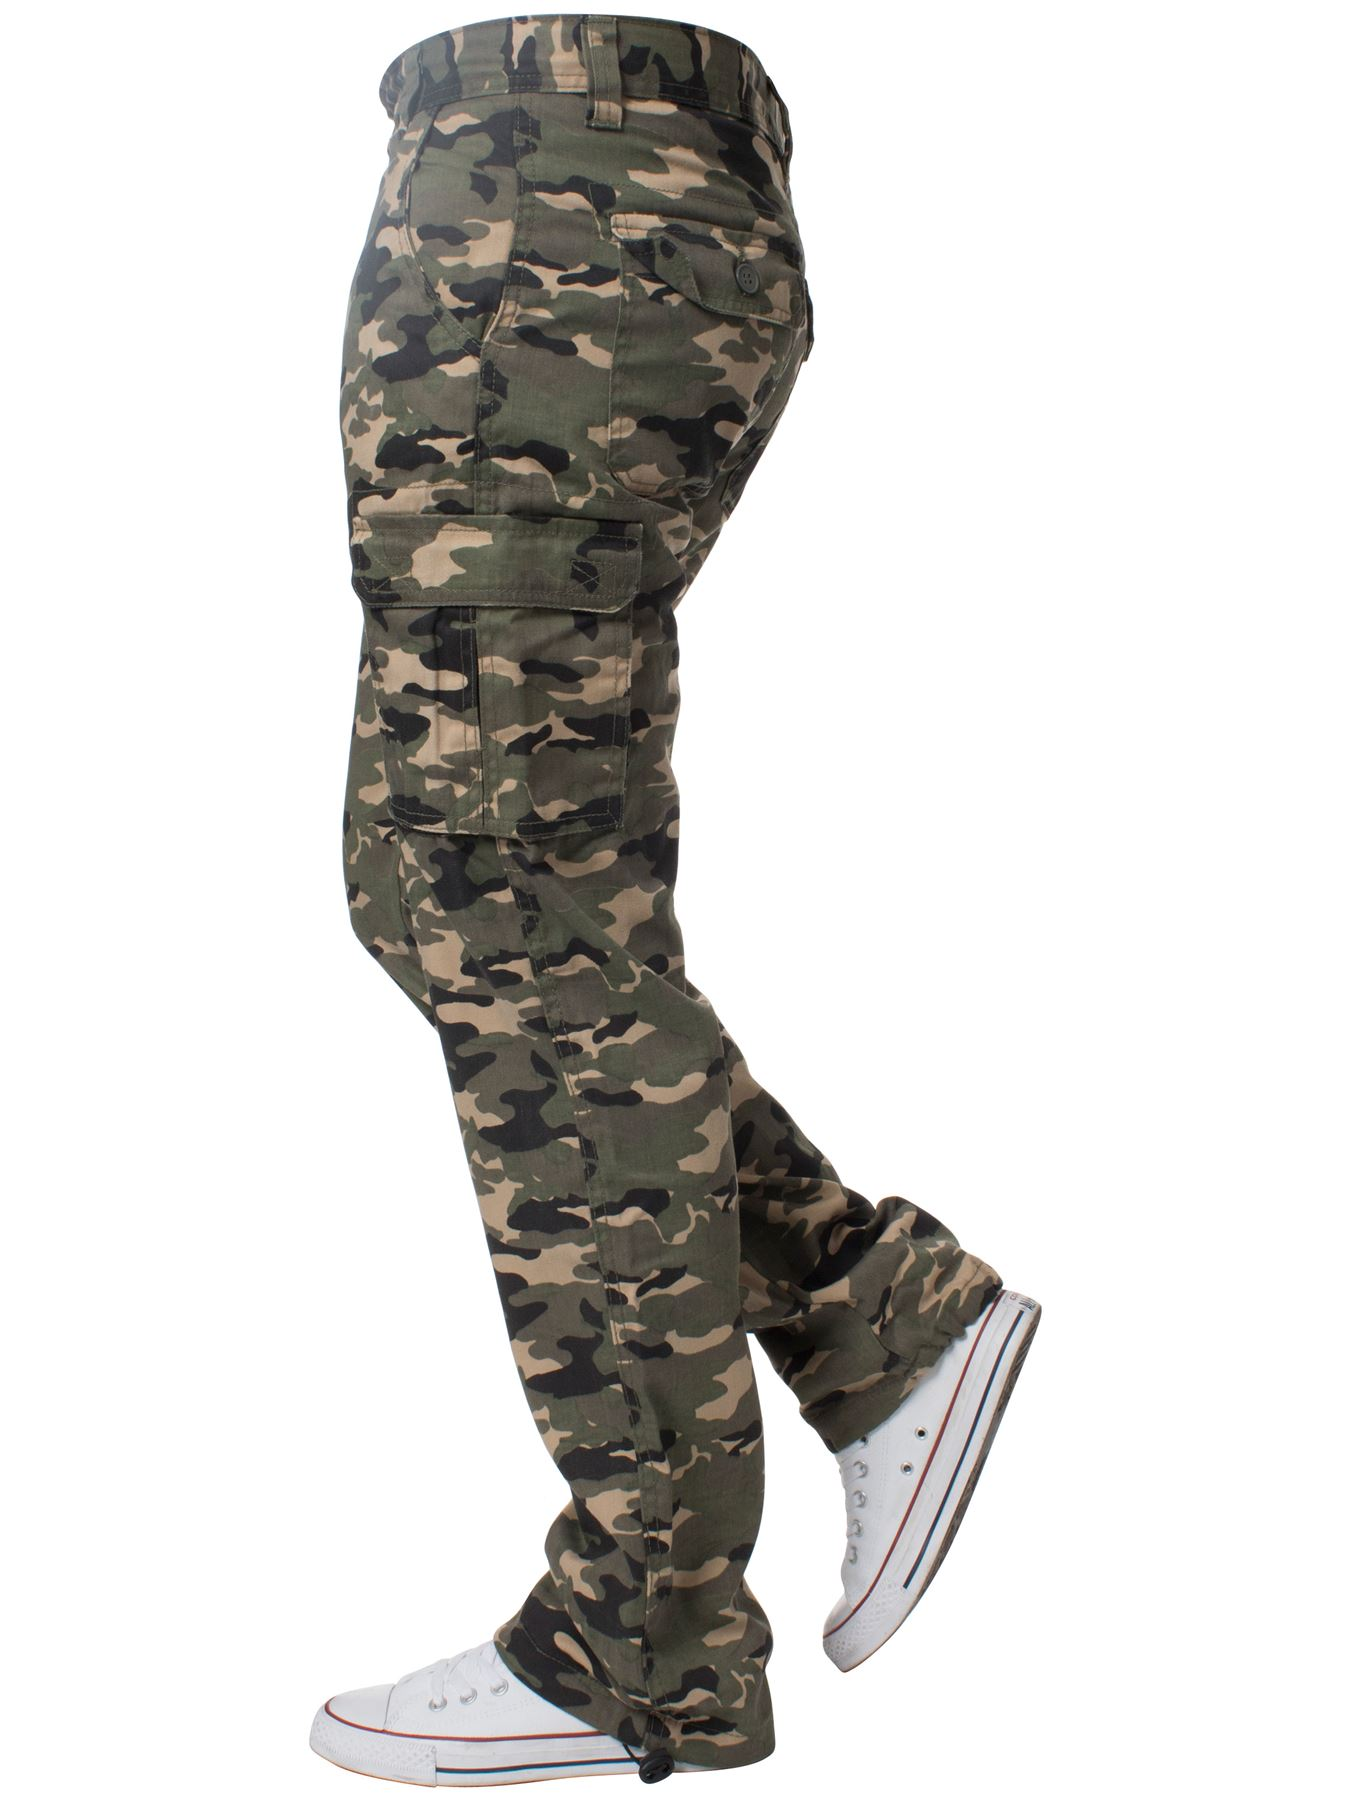 Kruze-Mens-Military-Combat-Trousers-Camouflage-Cargo-Camo-Army-Casual-Work-Pants thumbnail 17